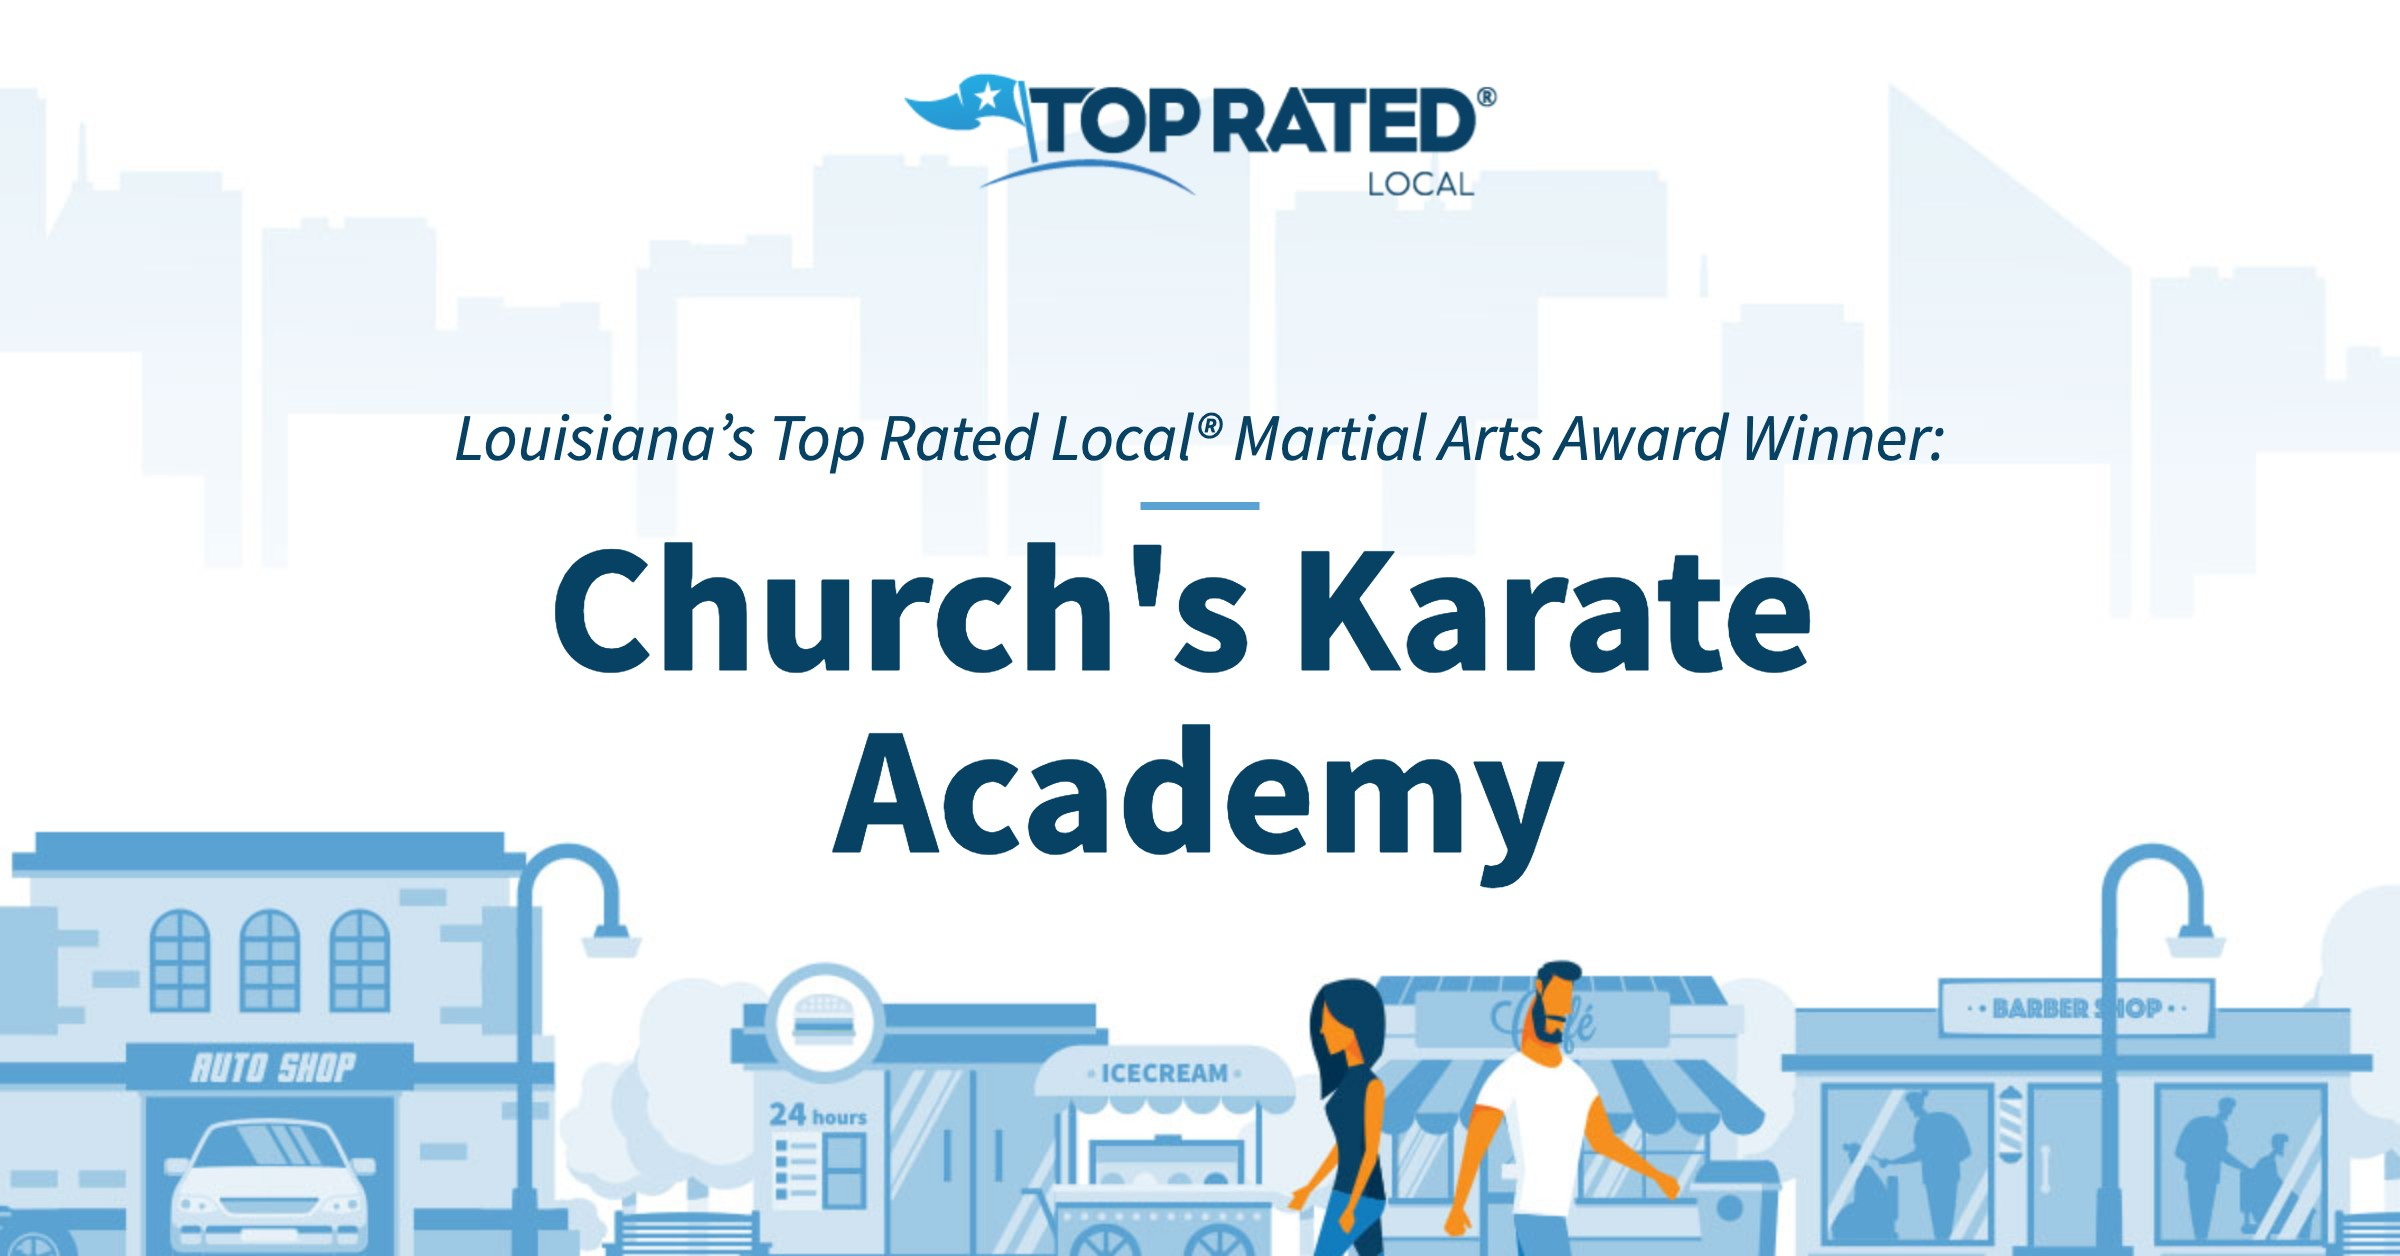 Louisiana's Top Rated Local® Martial Arts Award Winner: Church's Karate Academy